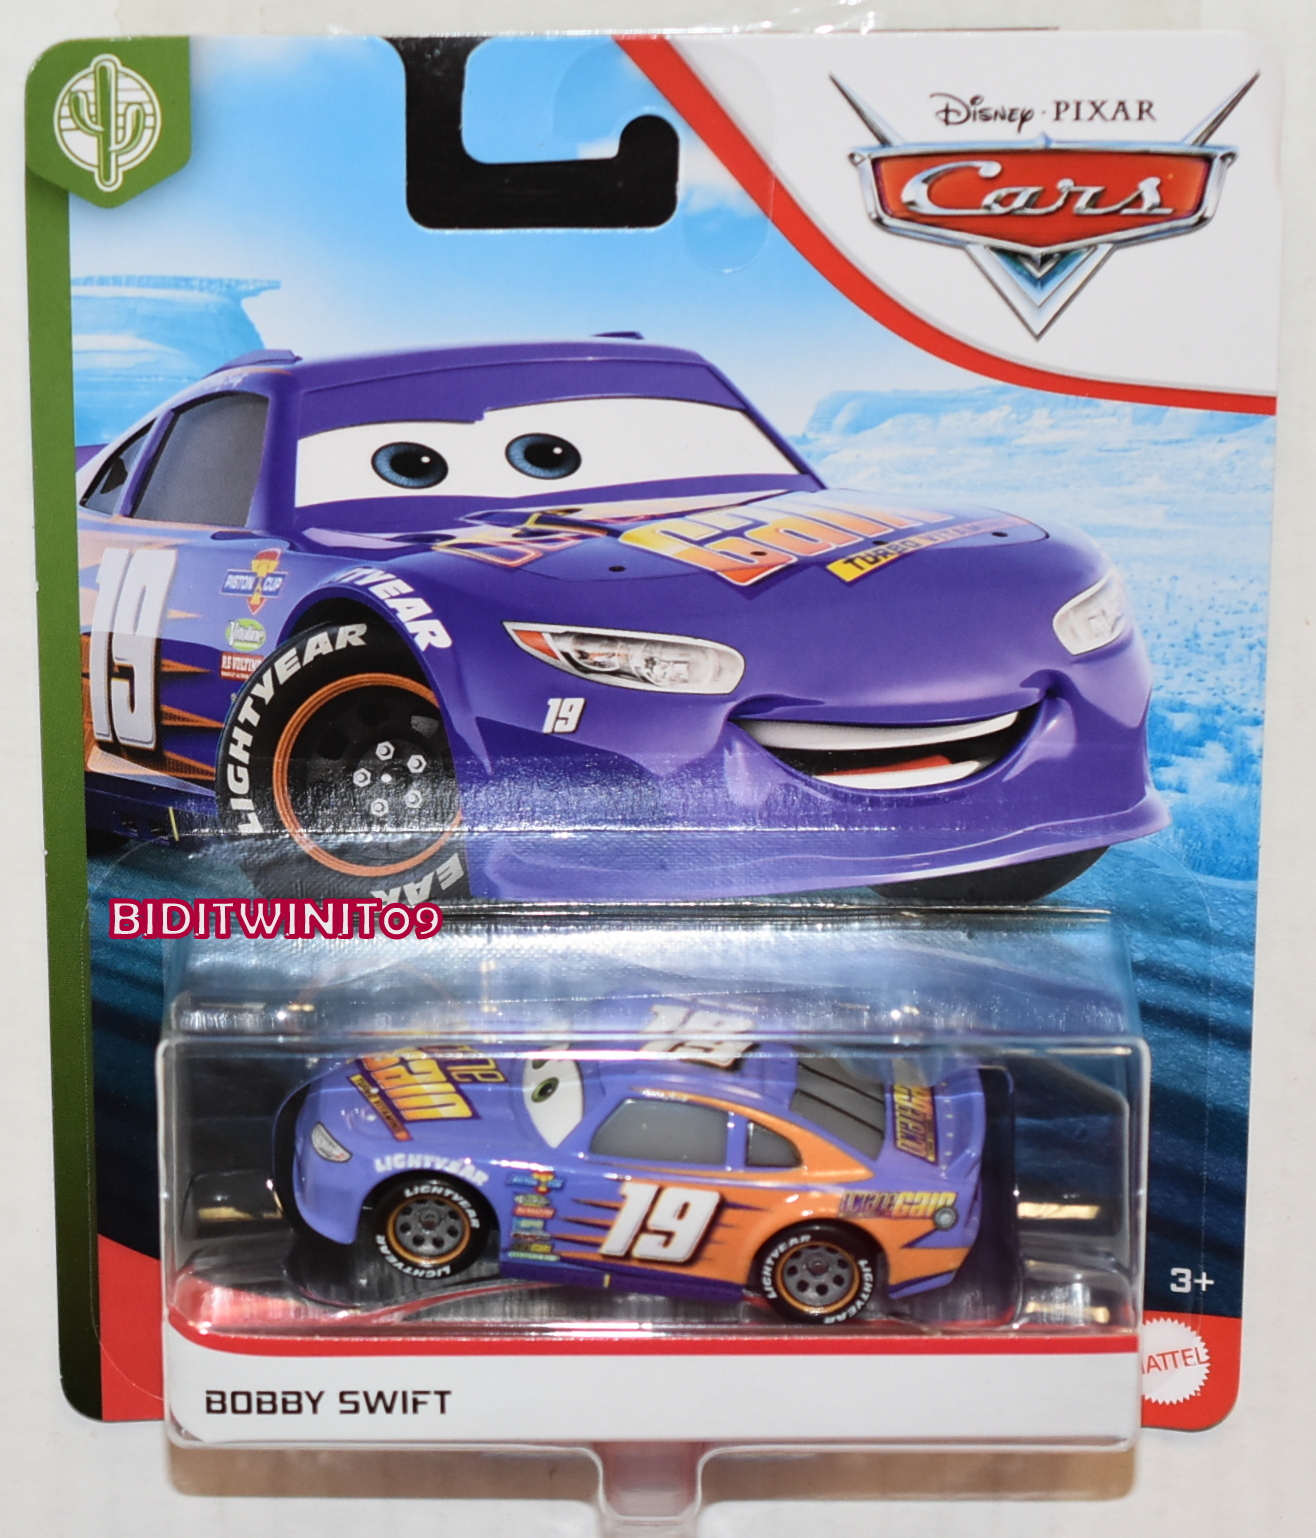 DISNEY PIXAR CARS 2020 BOBBY SWIFT CASE F E+